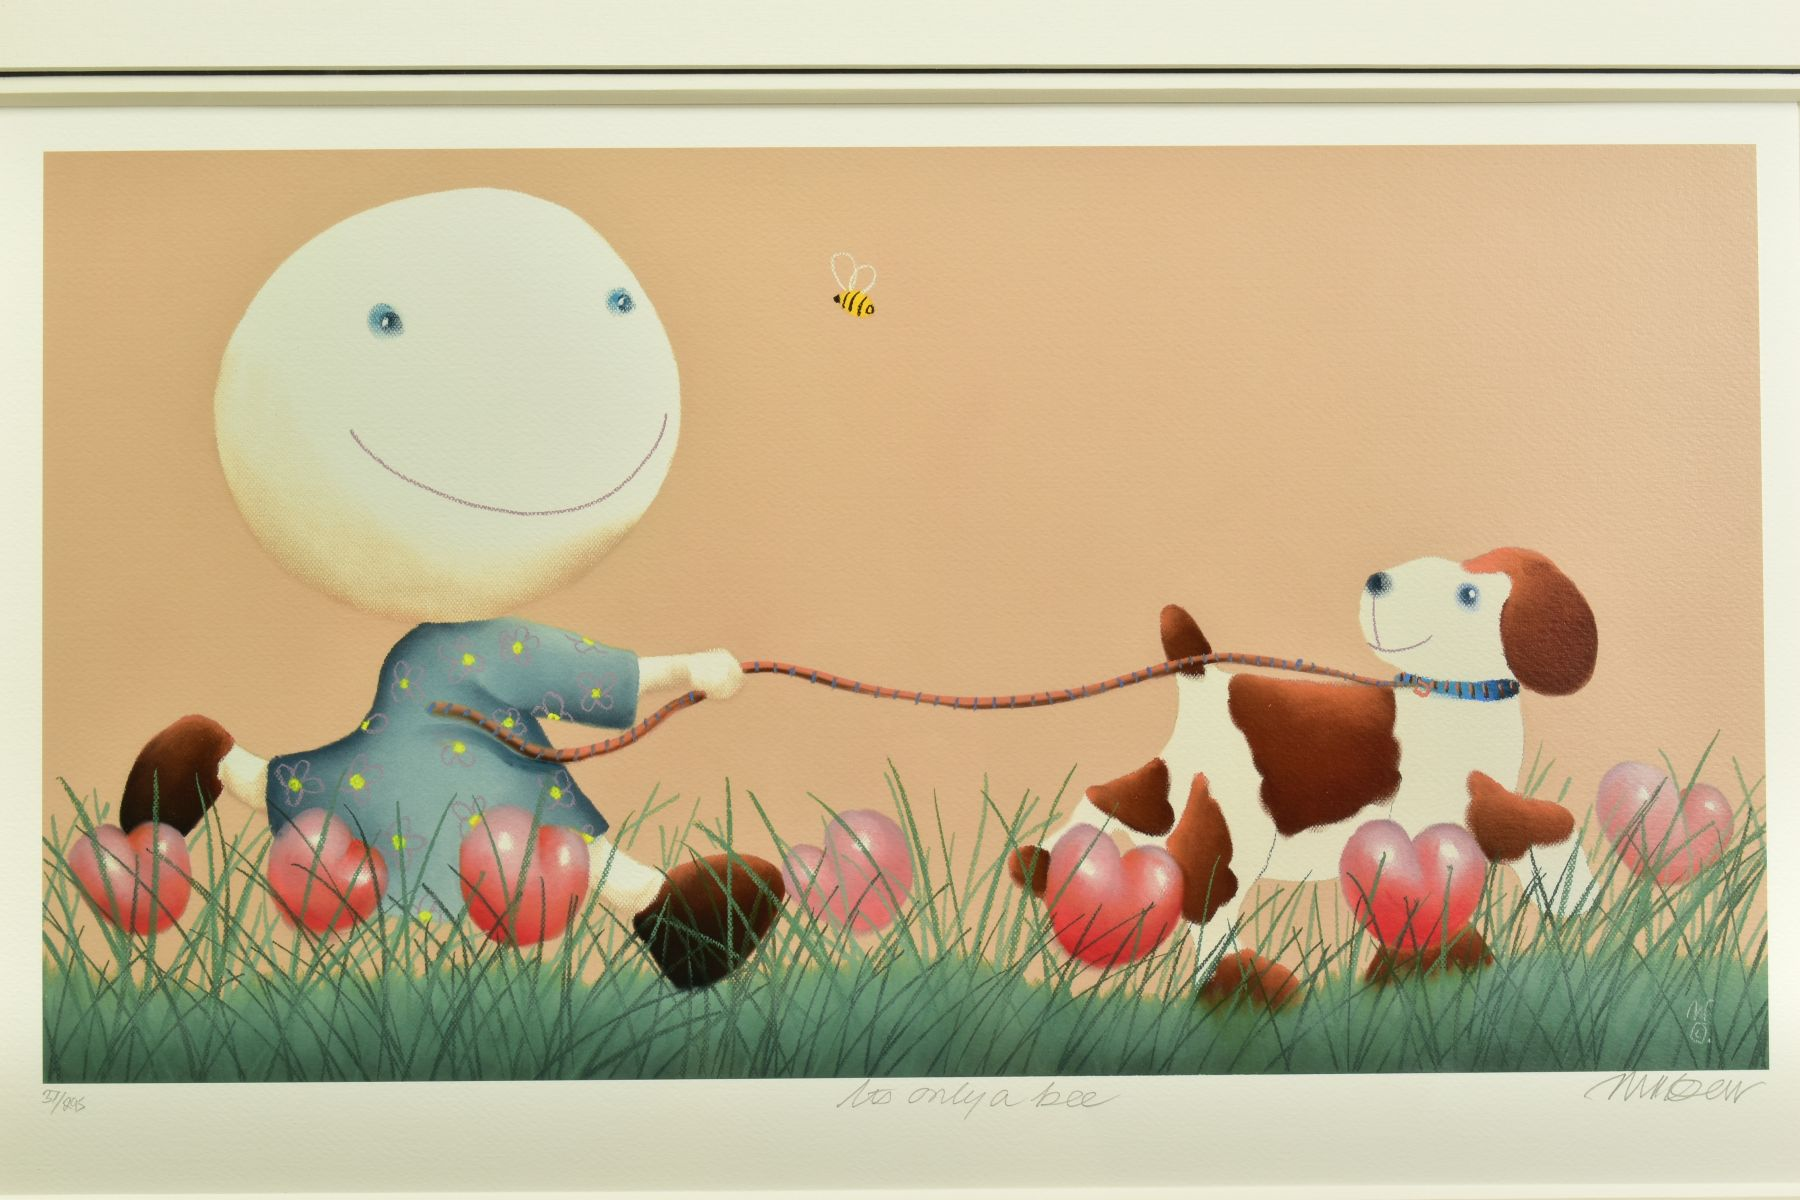 MACKENZIE THORPE (BRITISH 1956), 'It's Only A Bee', a Limited Edition print of a girl and her dog, - Image 2 of 6